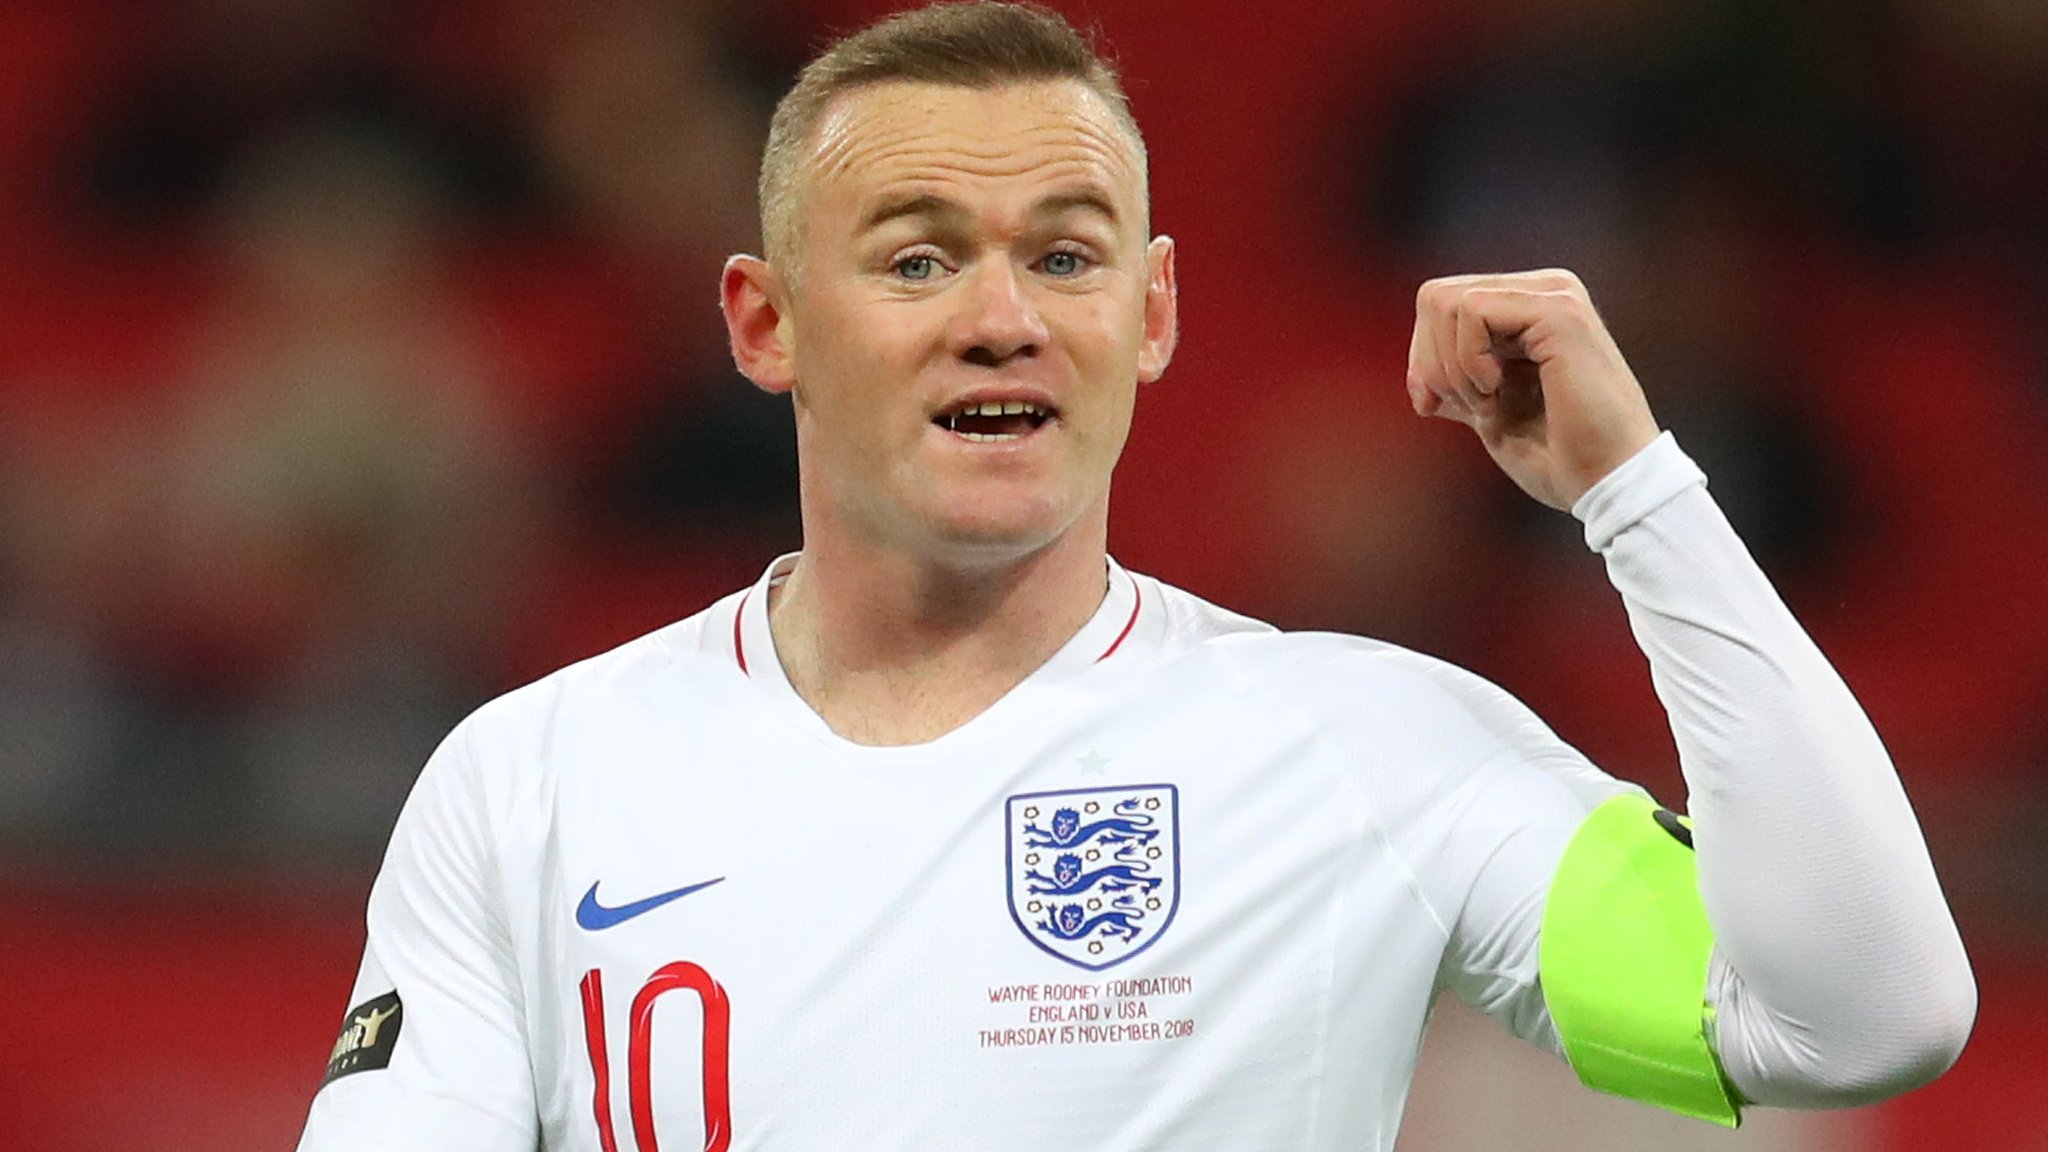 England sweep aside US in Rooney's farewell match